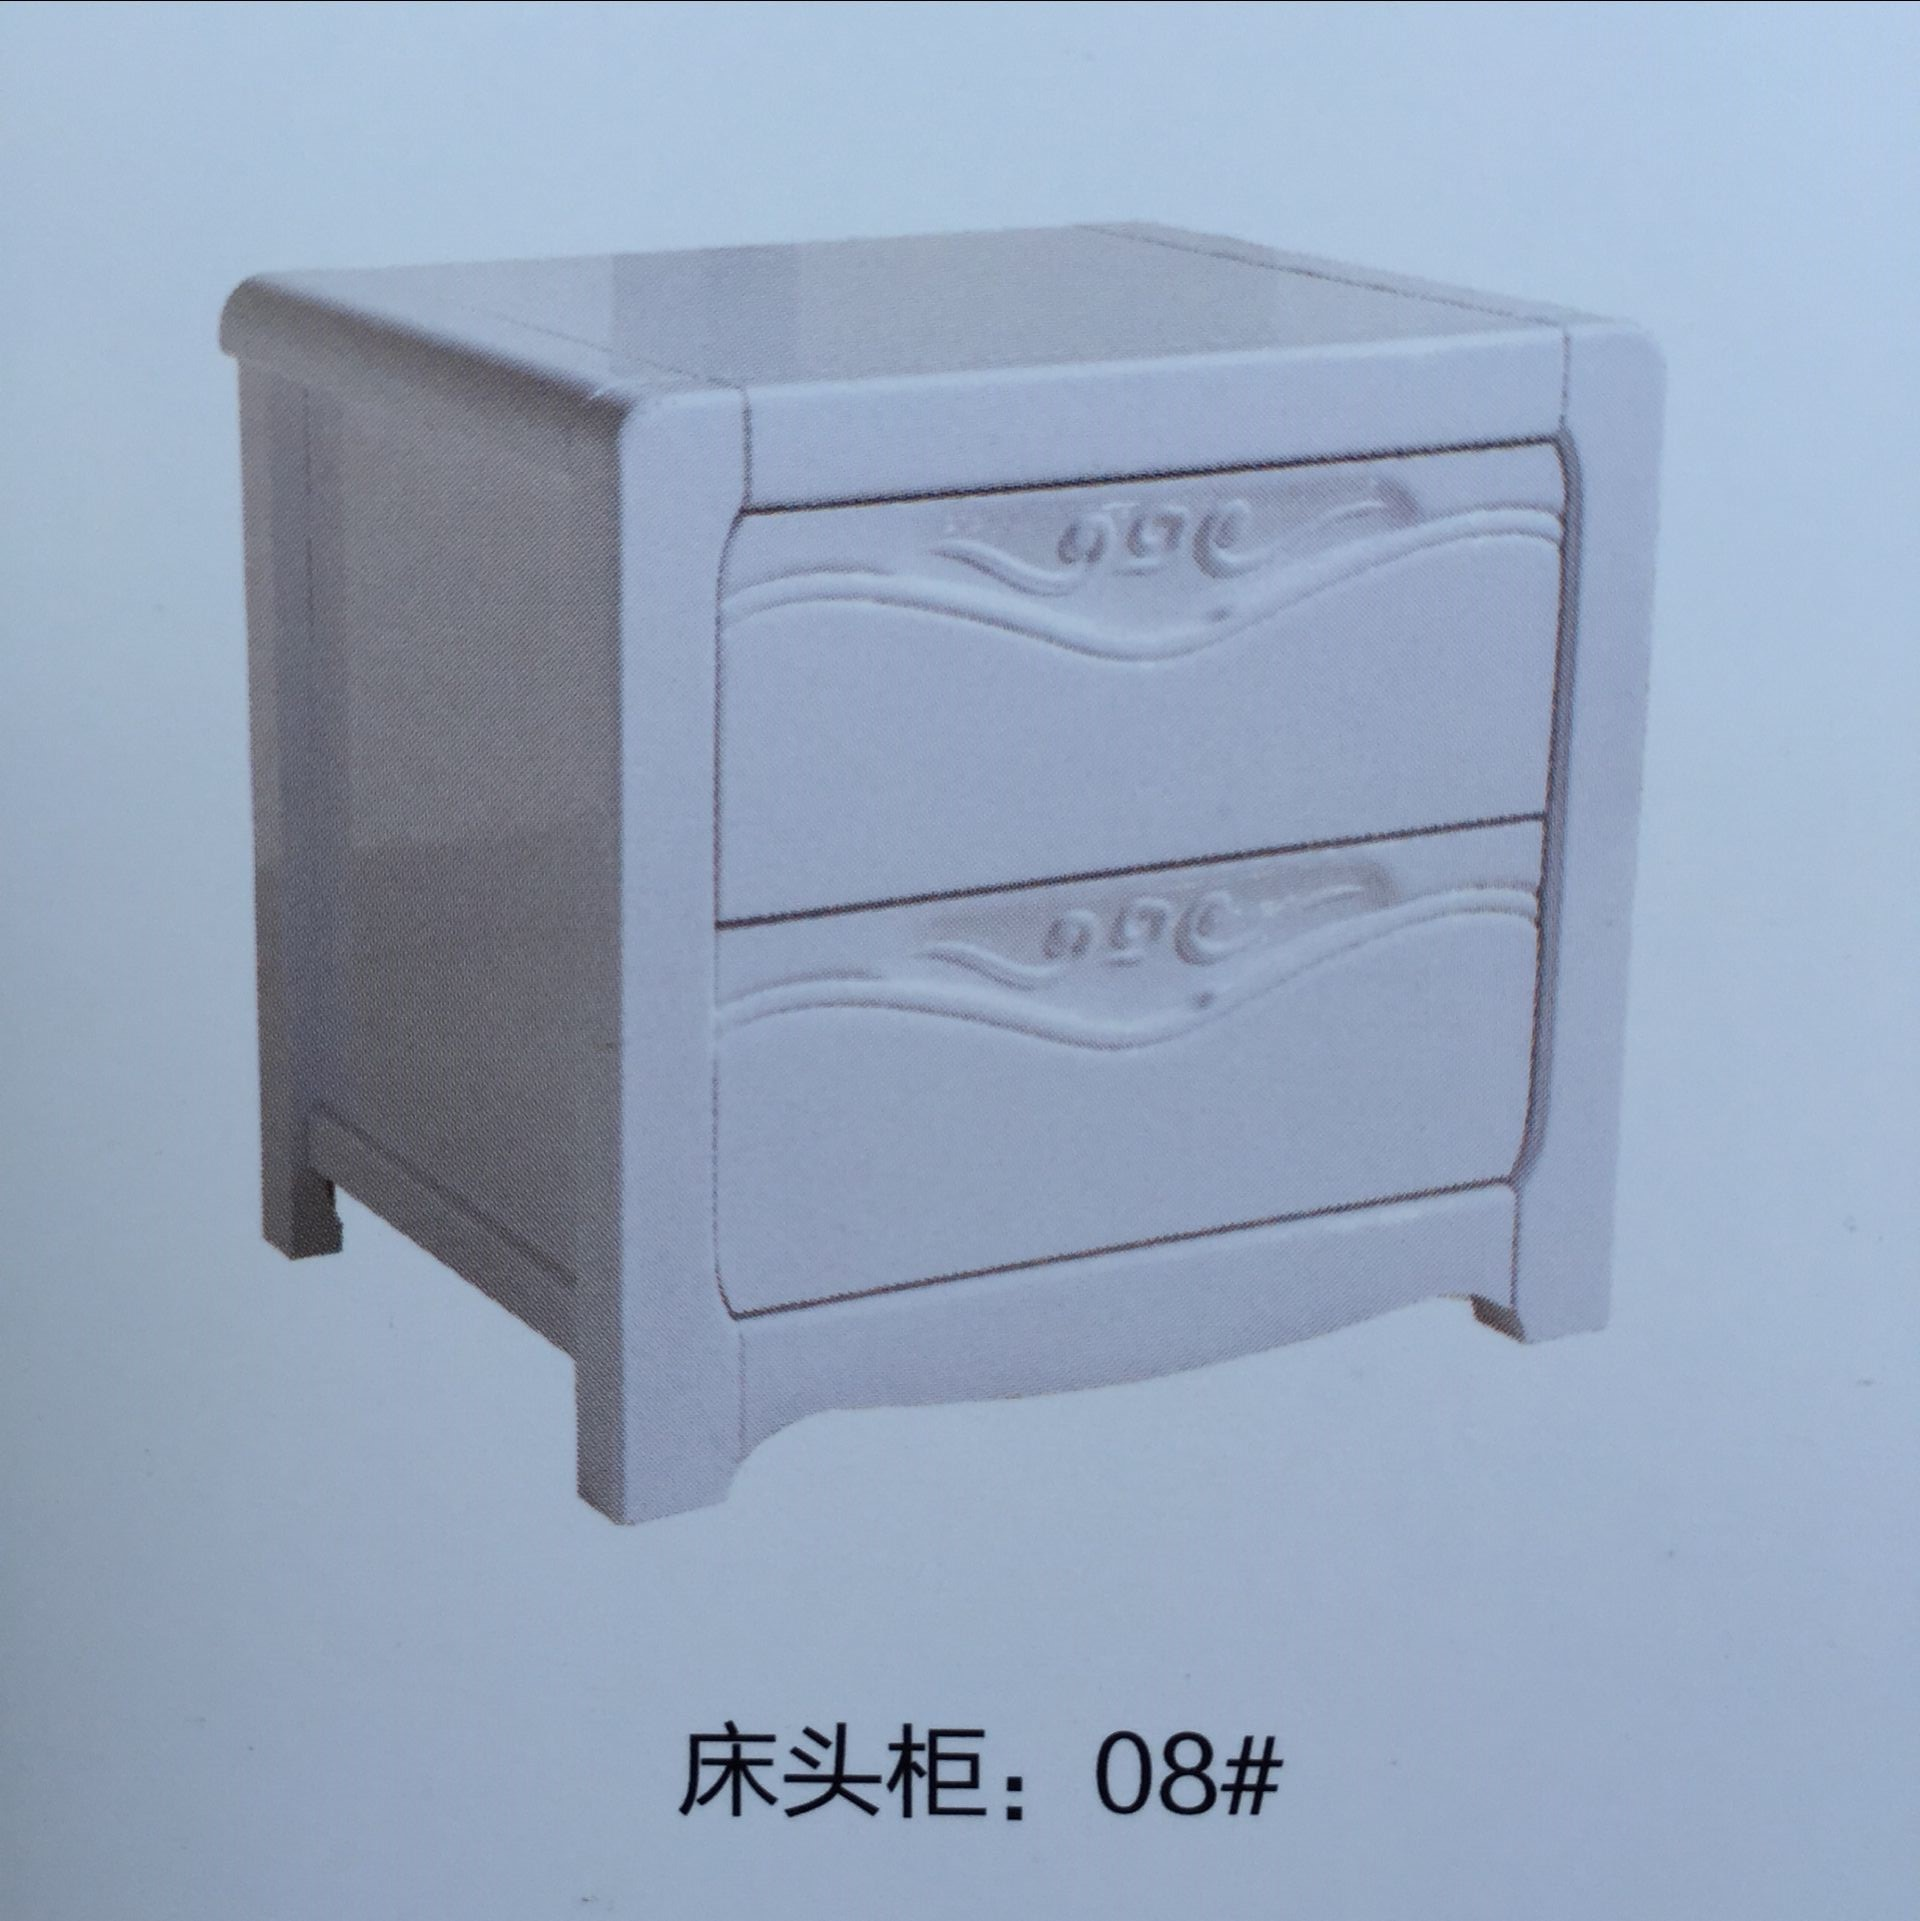 Excellent oak bed, double bed, solid wood bed, Hefei delivery installation, support delivery payment